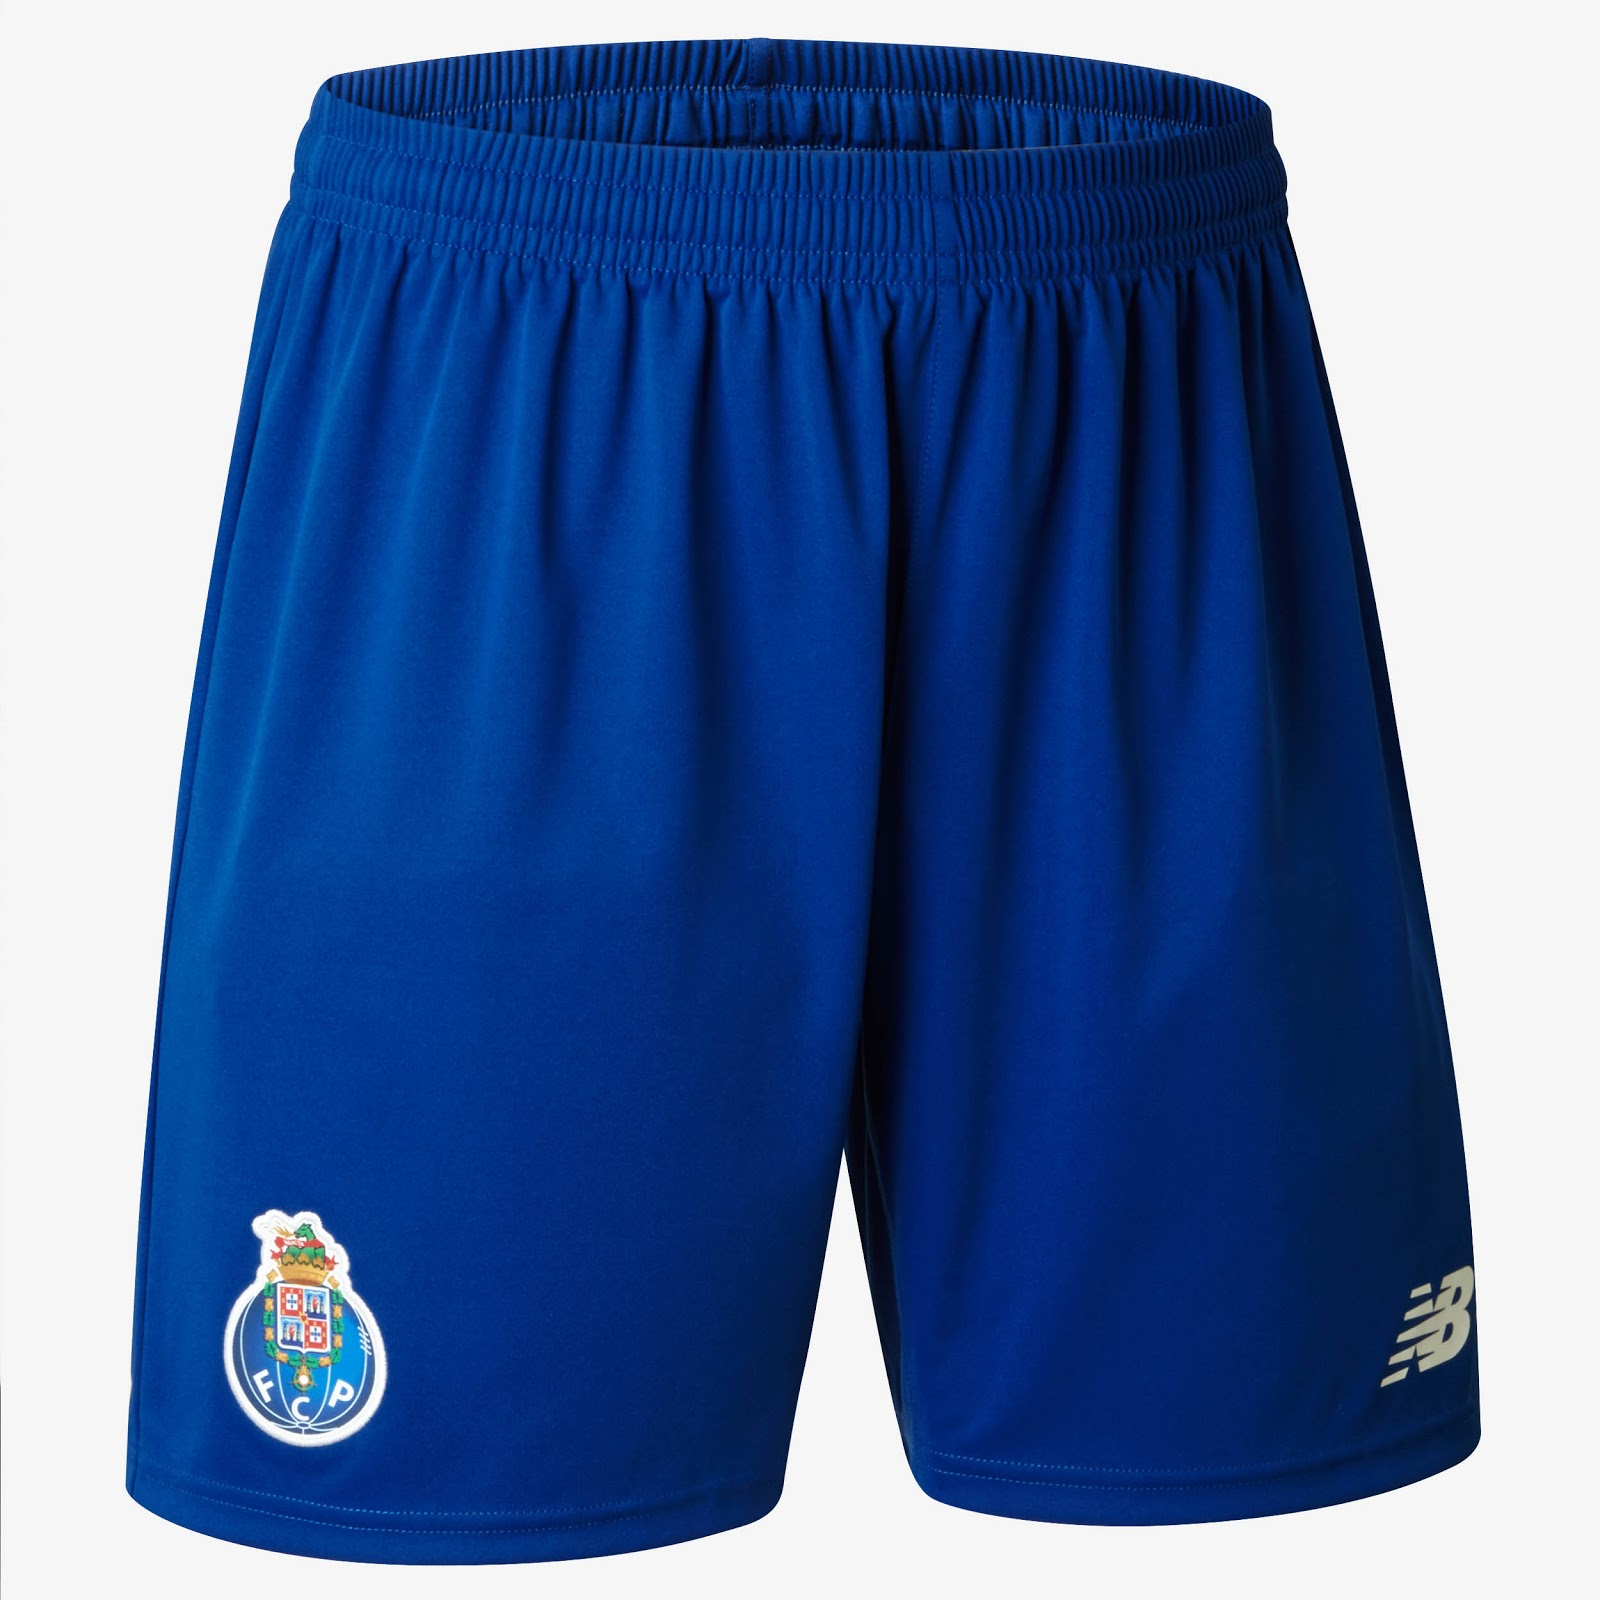 porto-17-18-home-kit-shorts